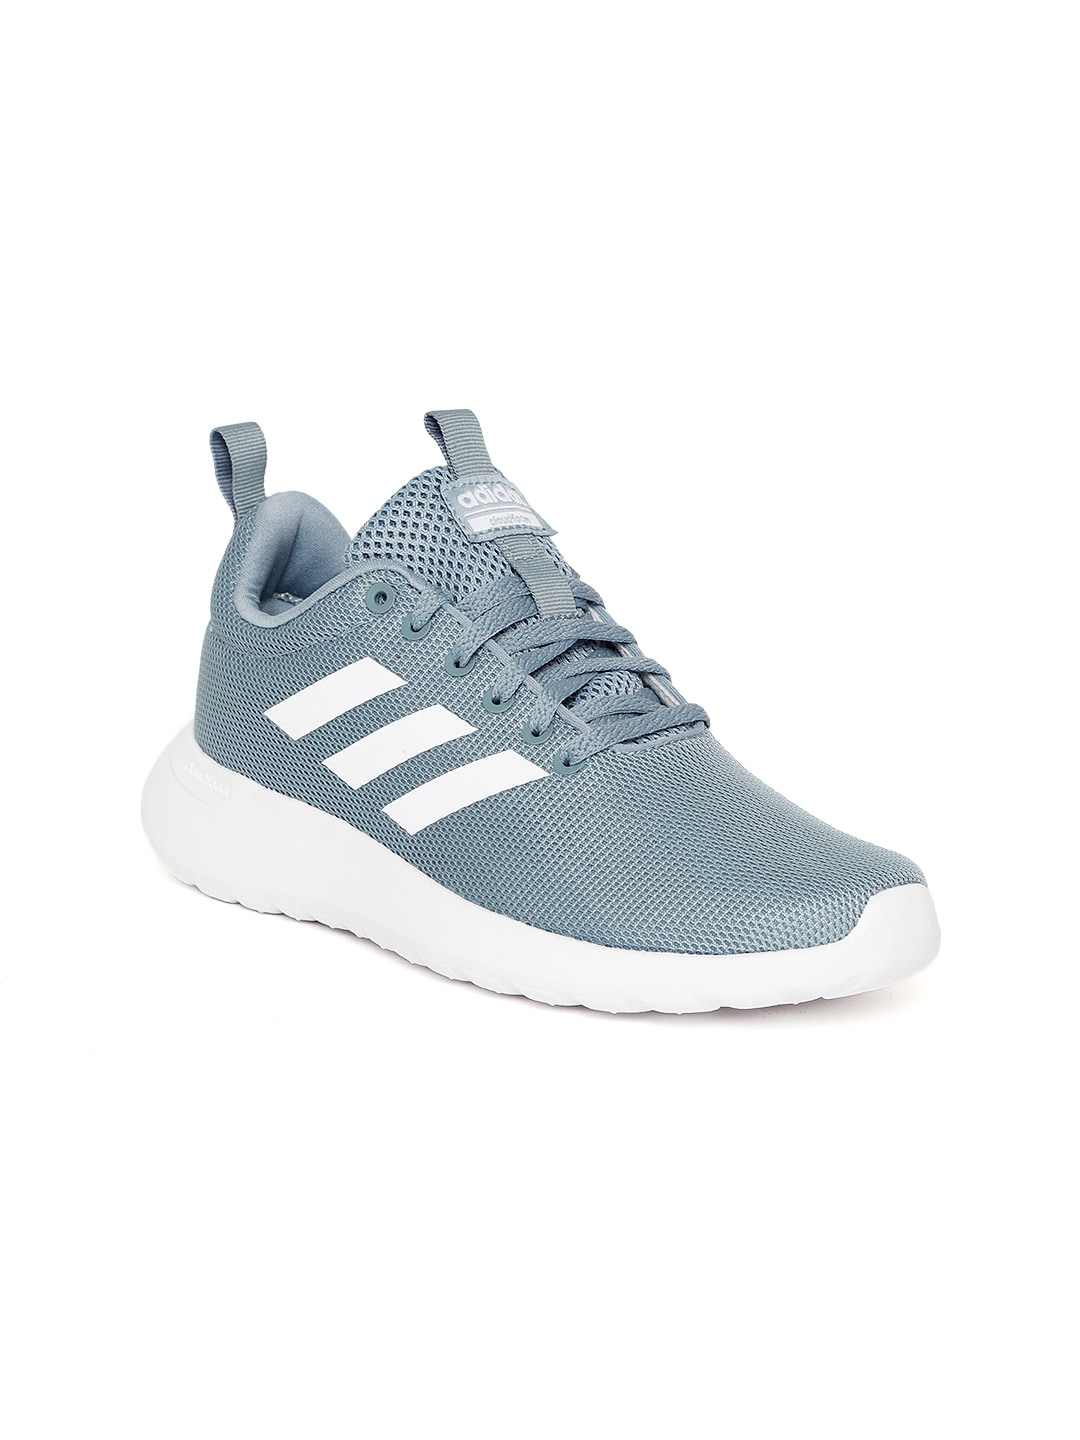 Adidas Racer - Buy Adidas Racer online in India 22ec90d22